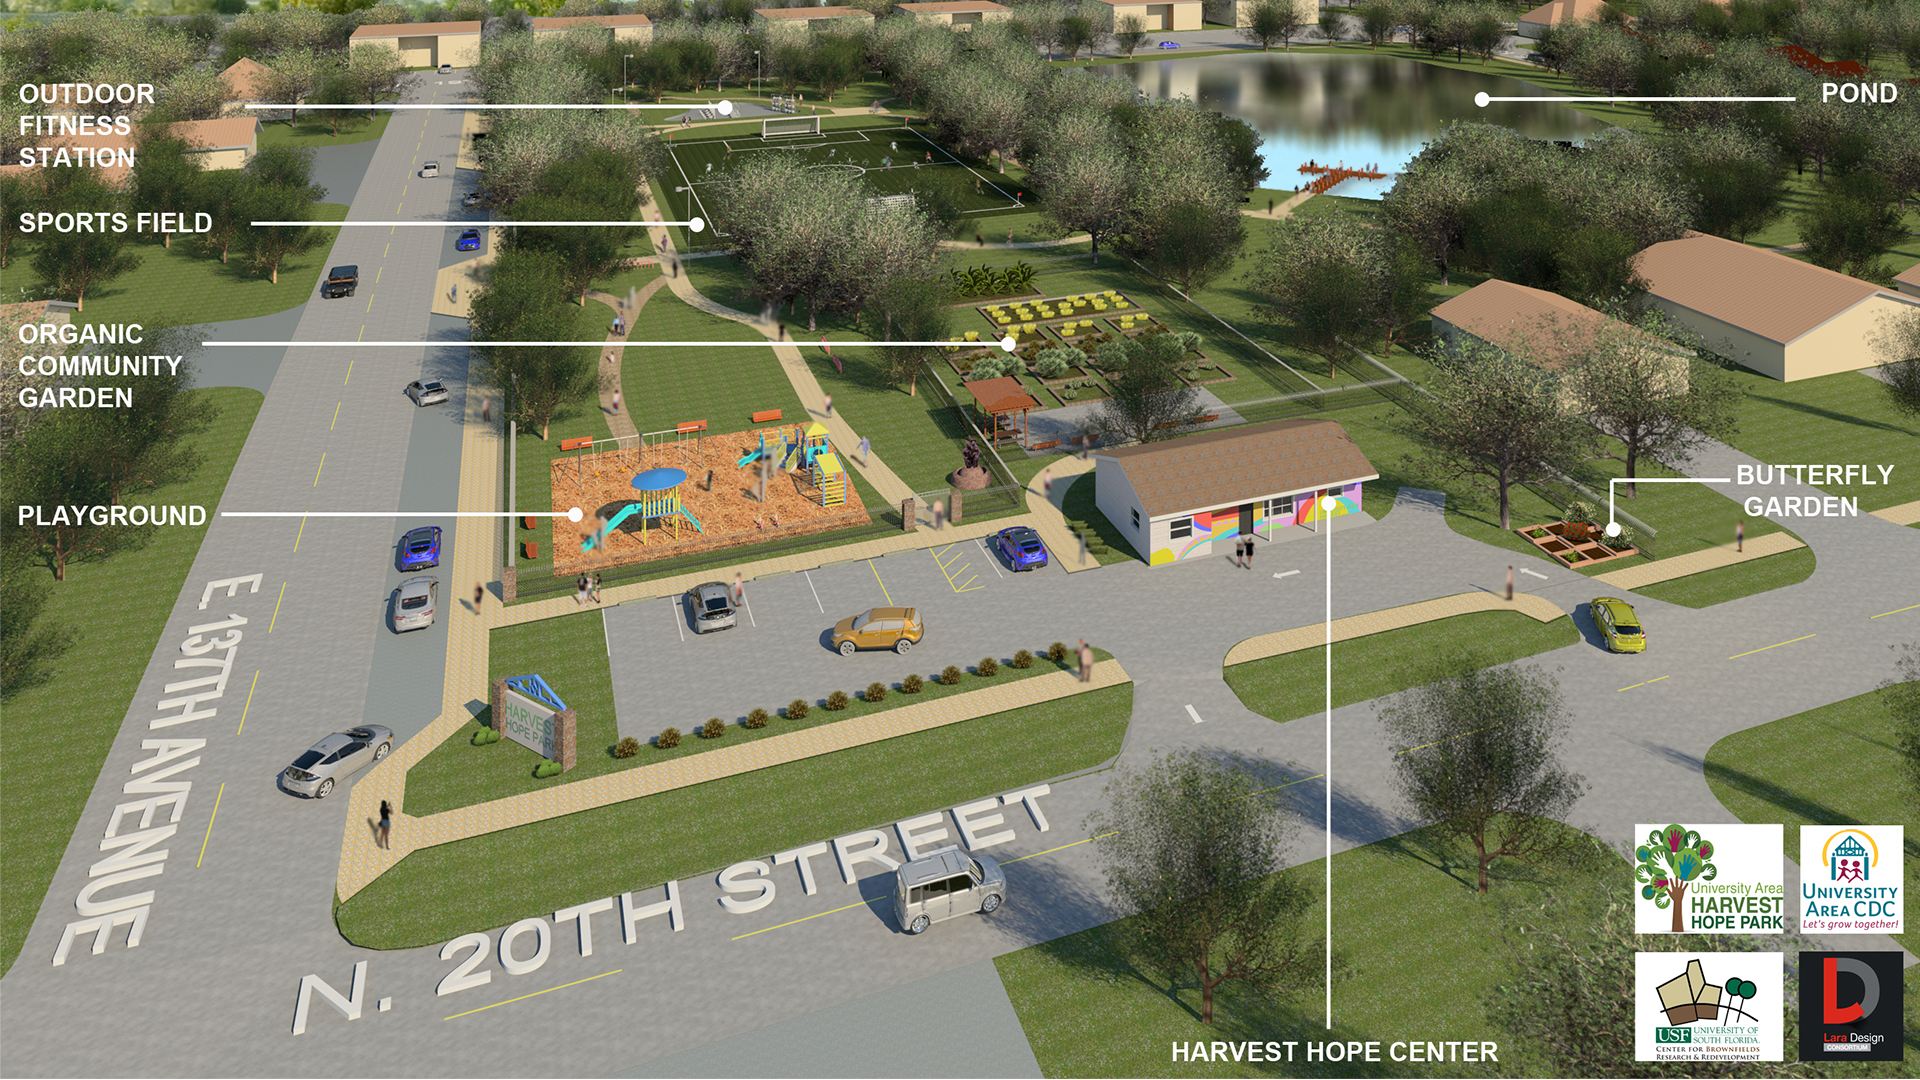 An artist's rendering of the University Area and Harvest Hope Park